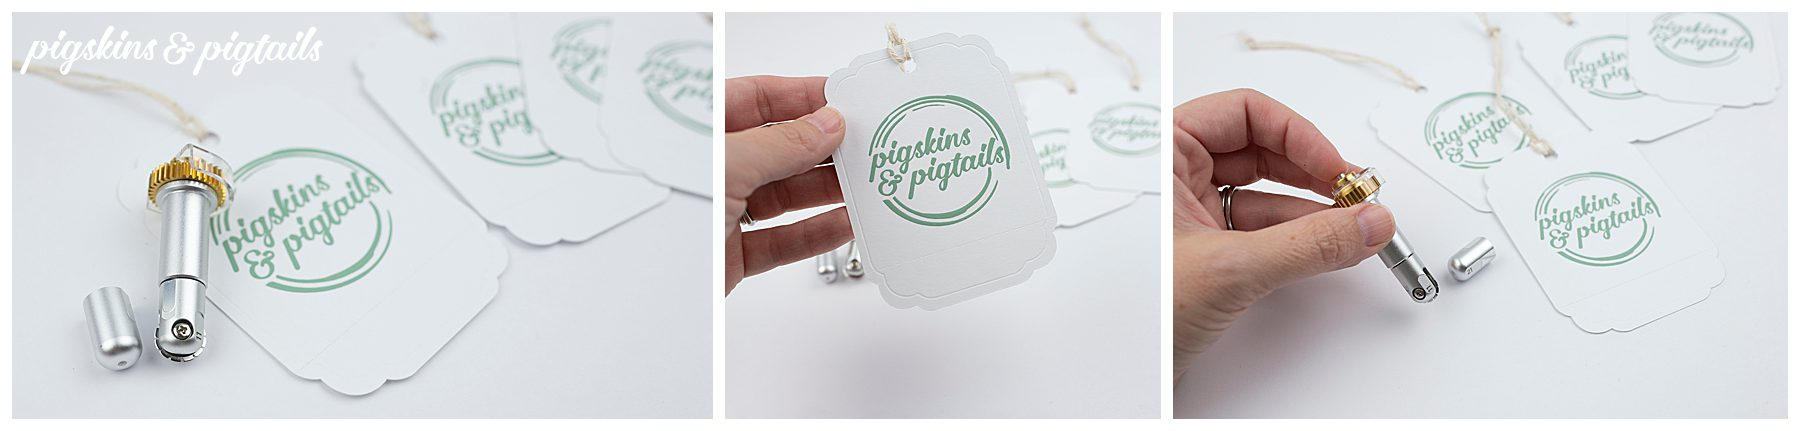 cricut debossing perforation blade how to